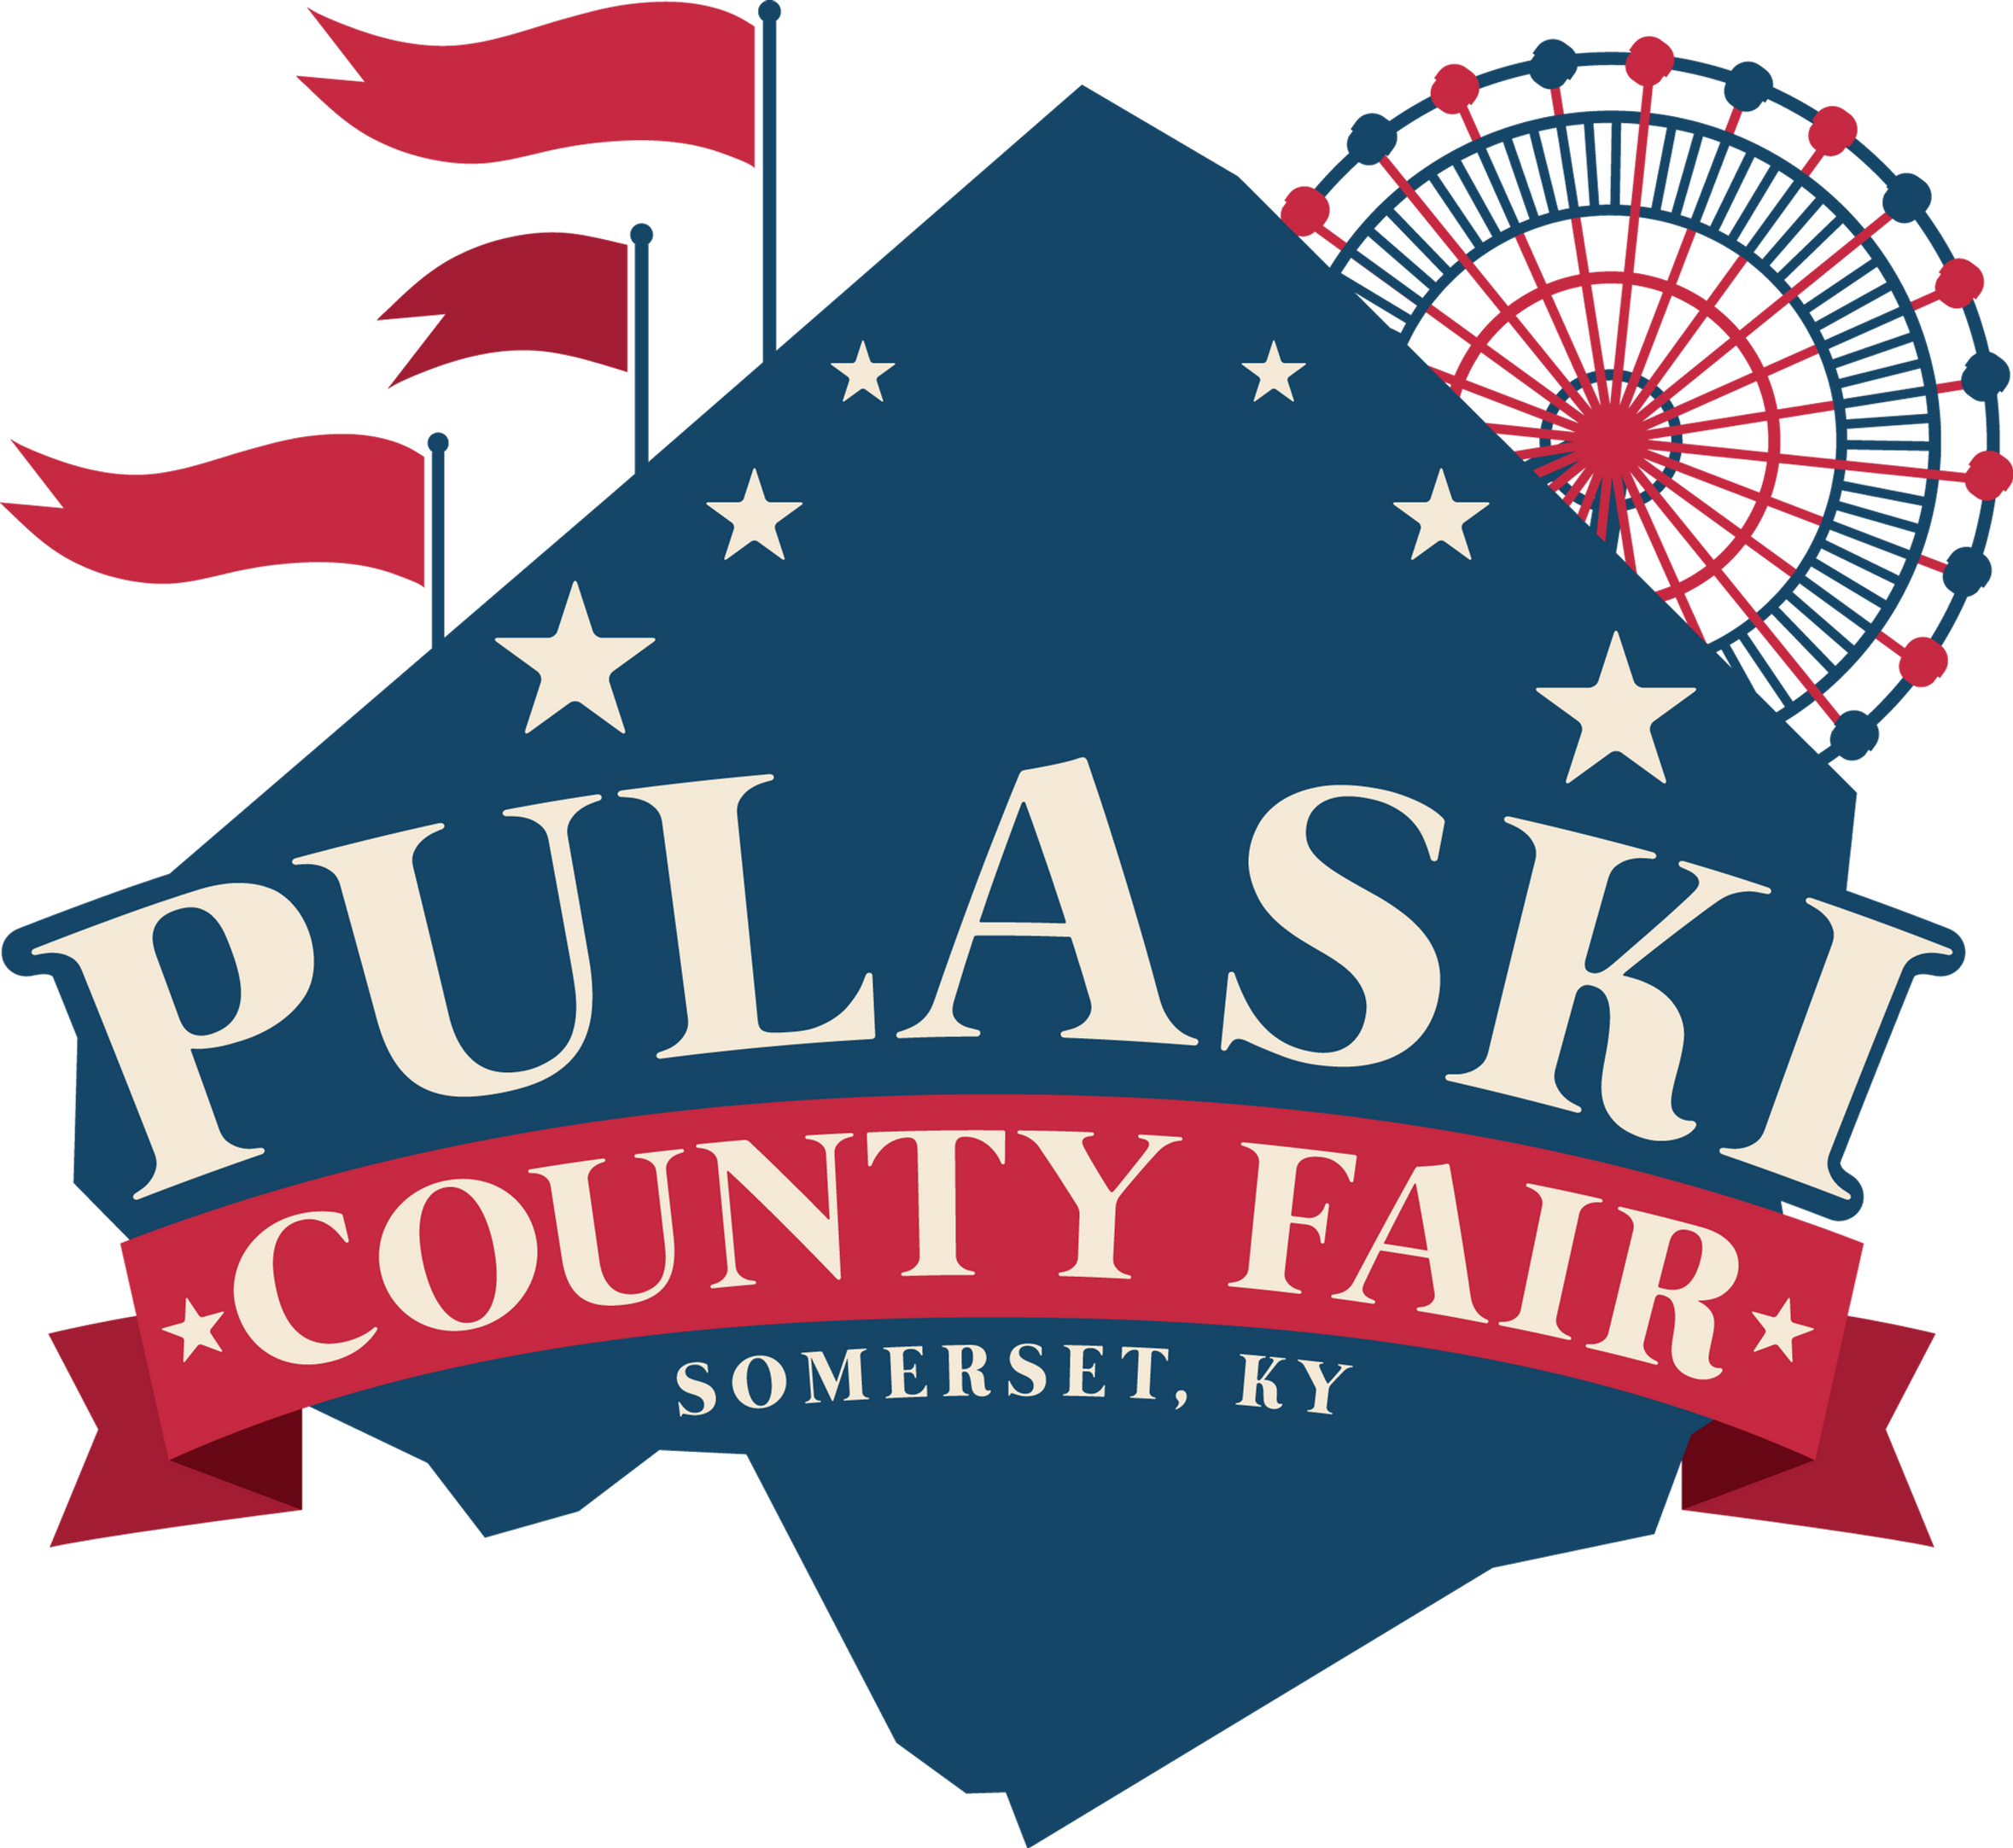 Pulaski County Fair 2020.County Fair Pulaski County Fair United States